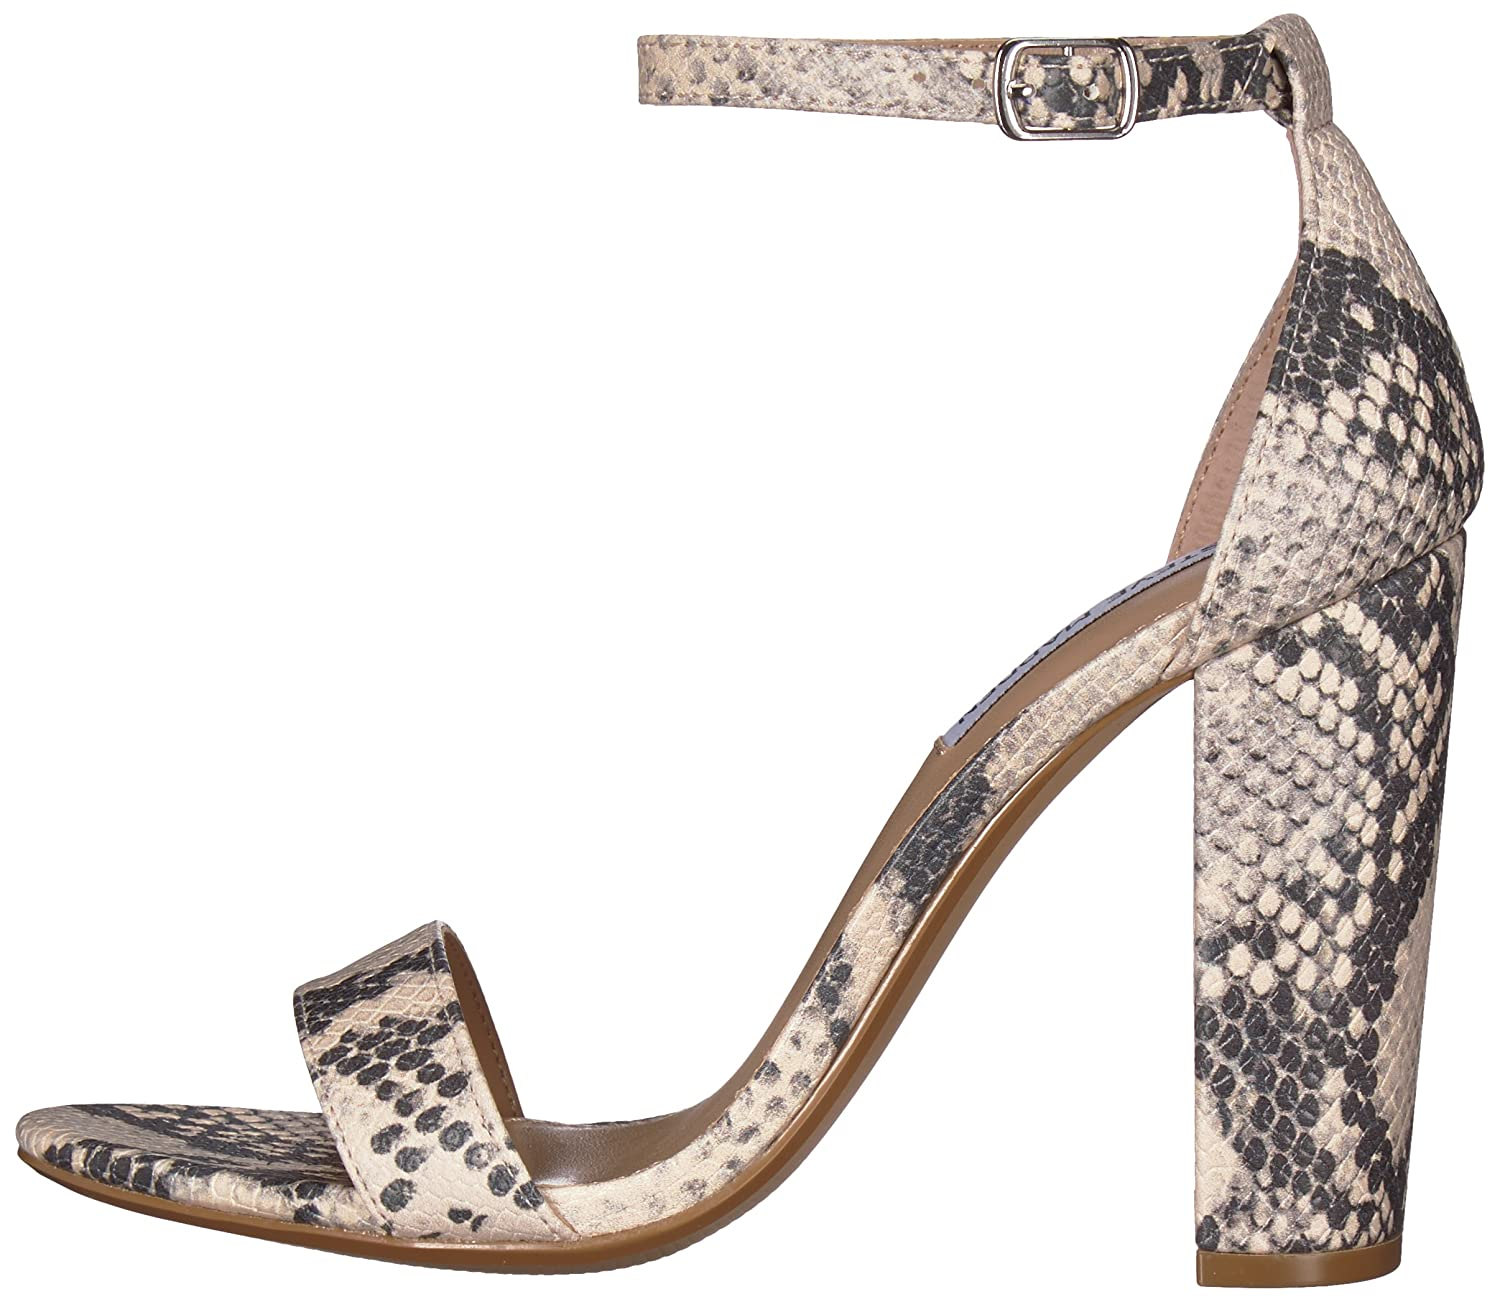 Steve Madden Women's 8.5 Carrson Dress Sandal B077F6WSJS 8.5 Women's B(M) US|Snake cec7ff